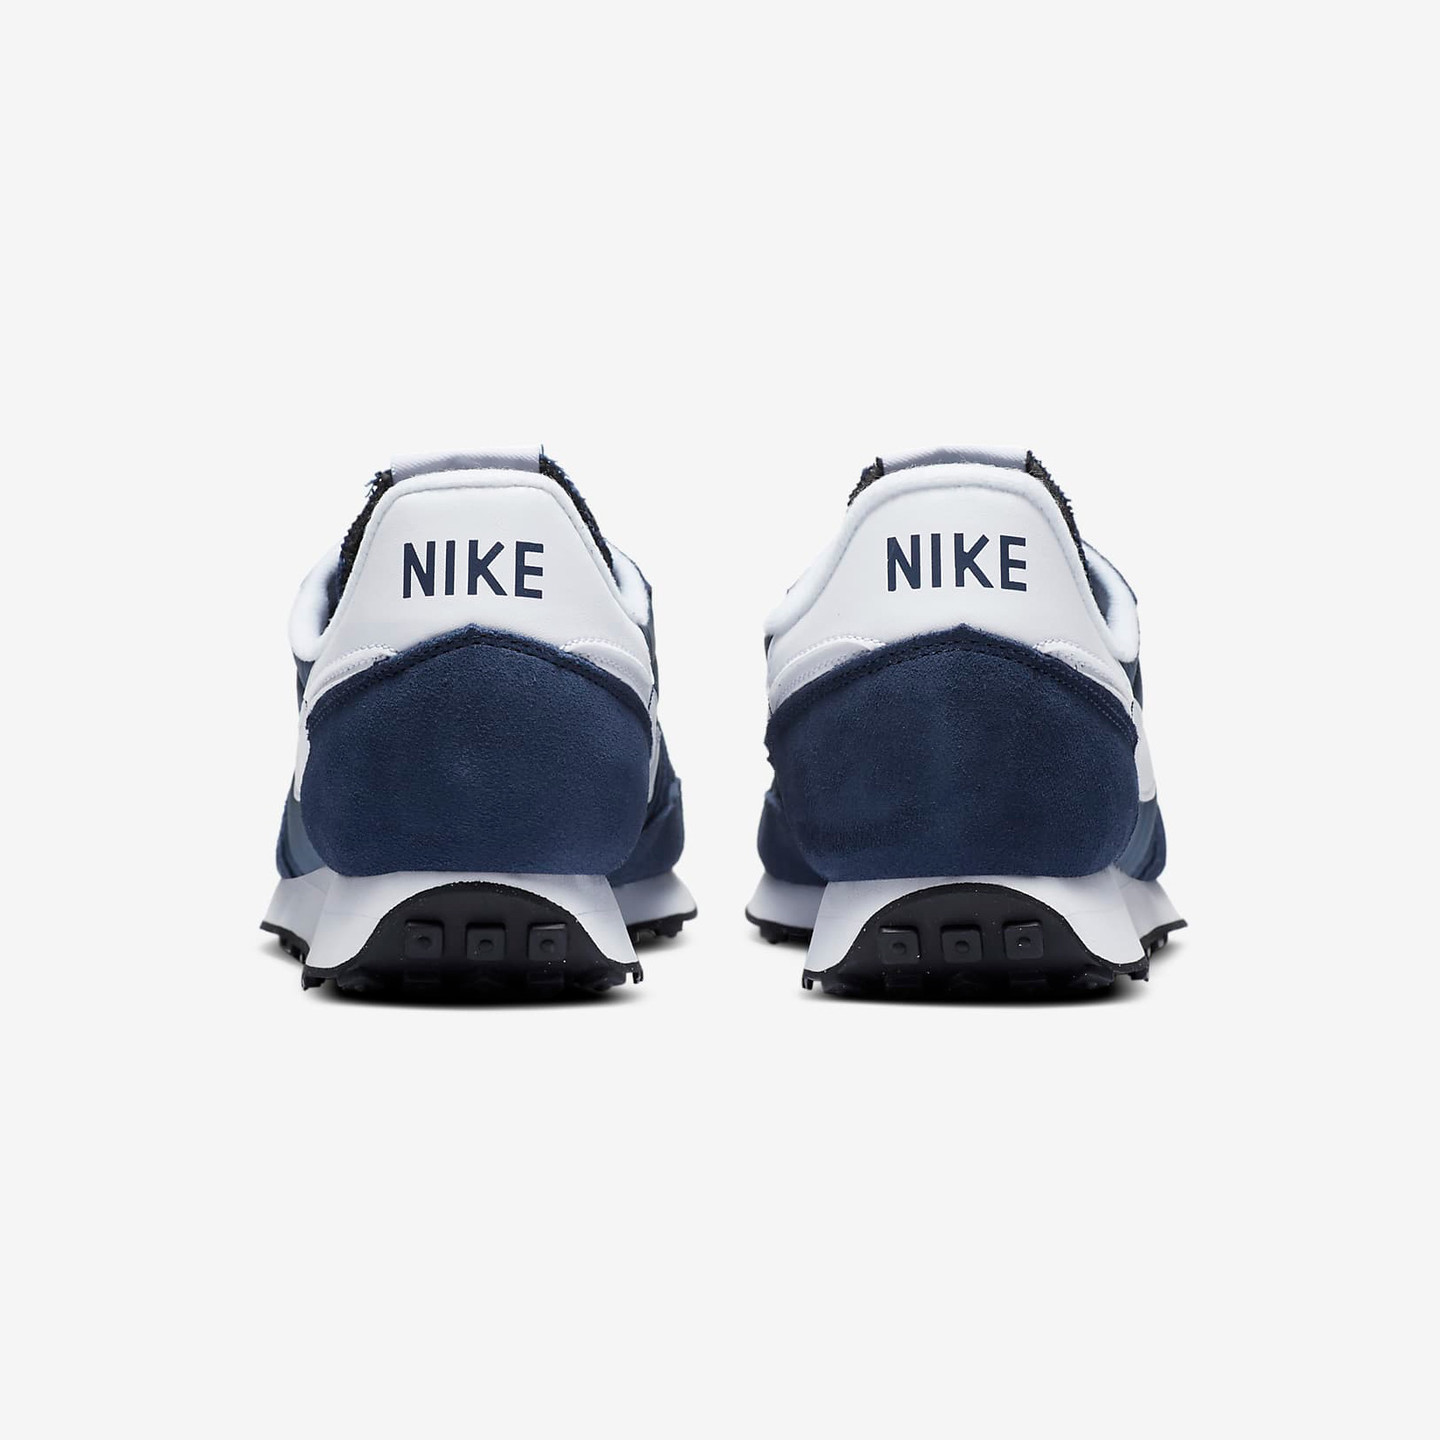 Nike Challenger OG Midnight Navy / Black / White CW7645-400